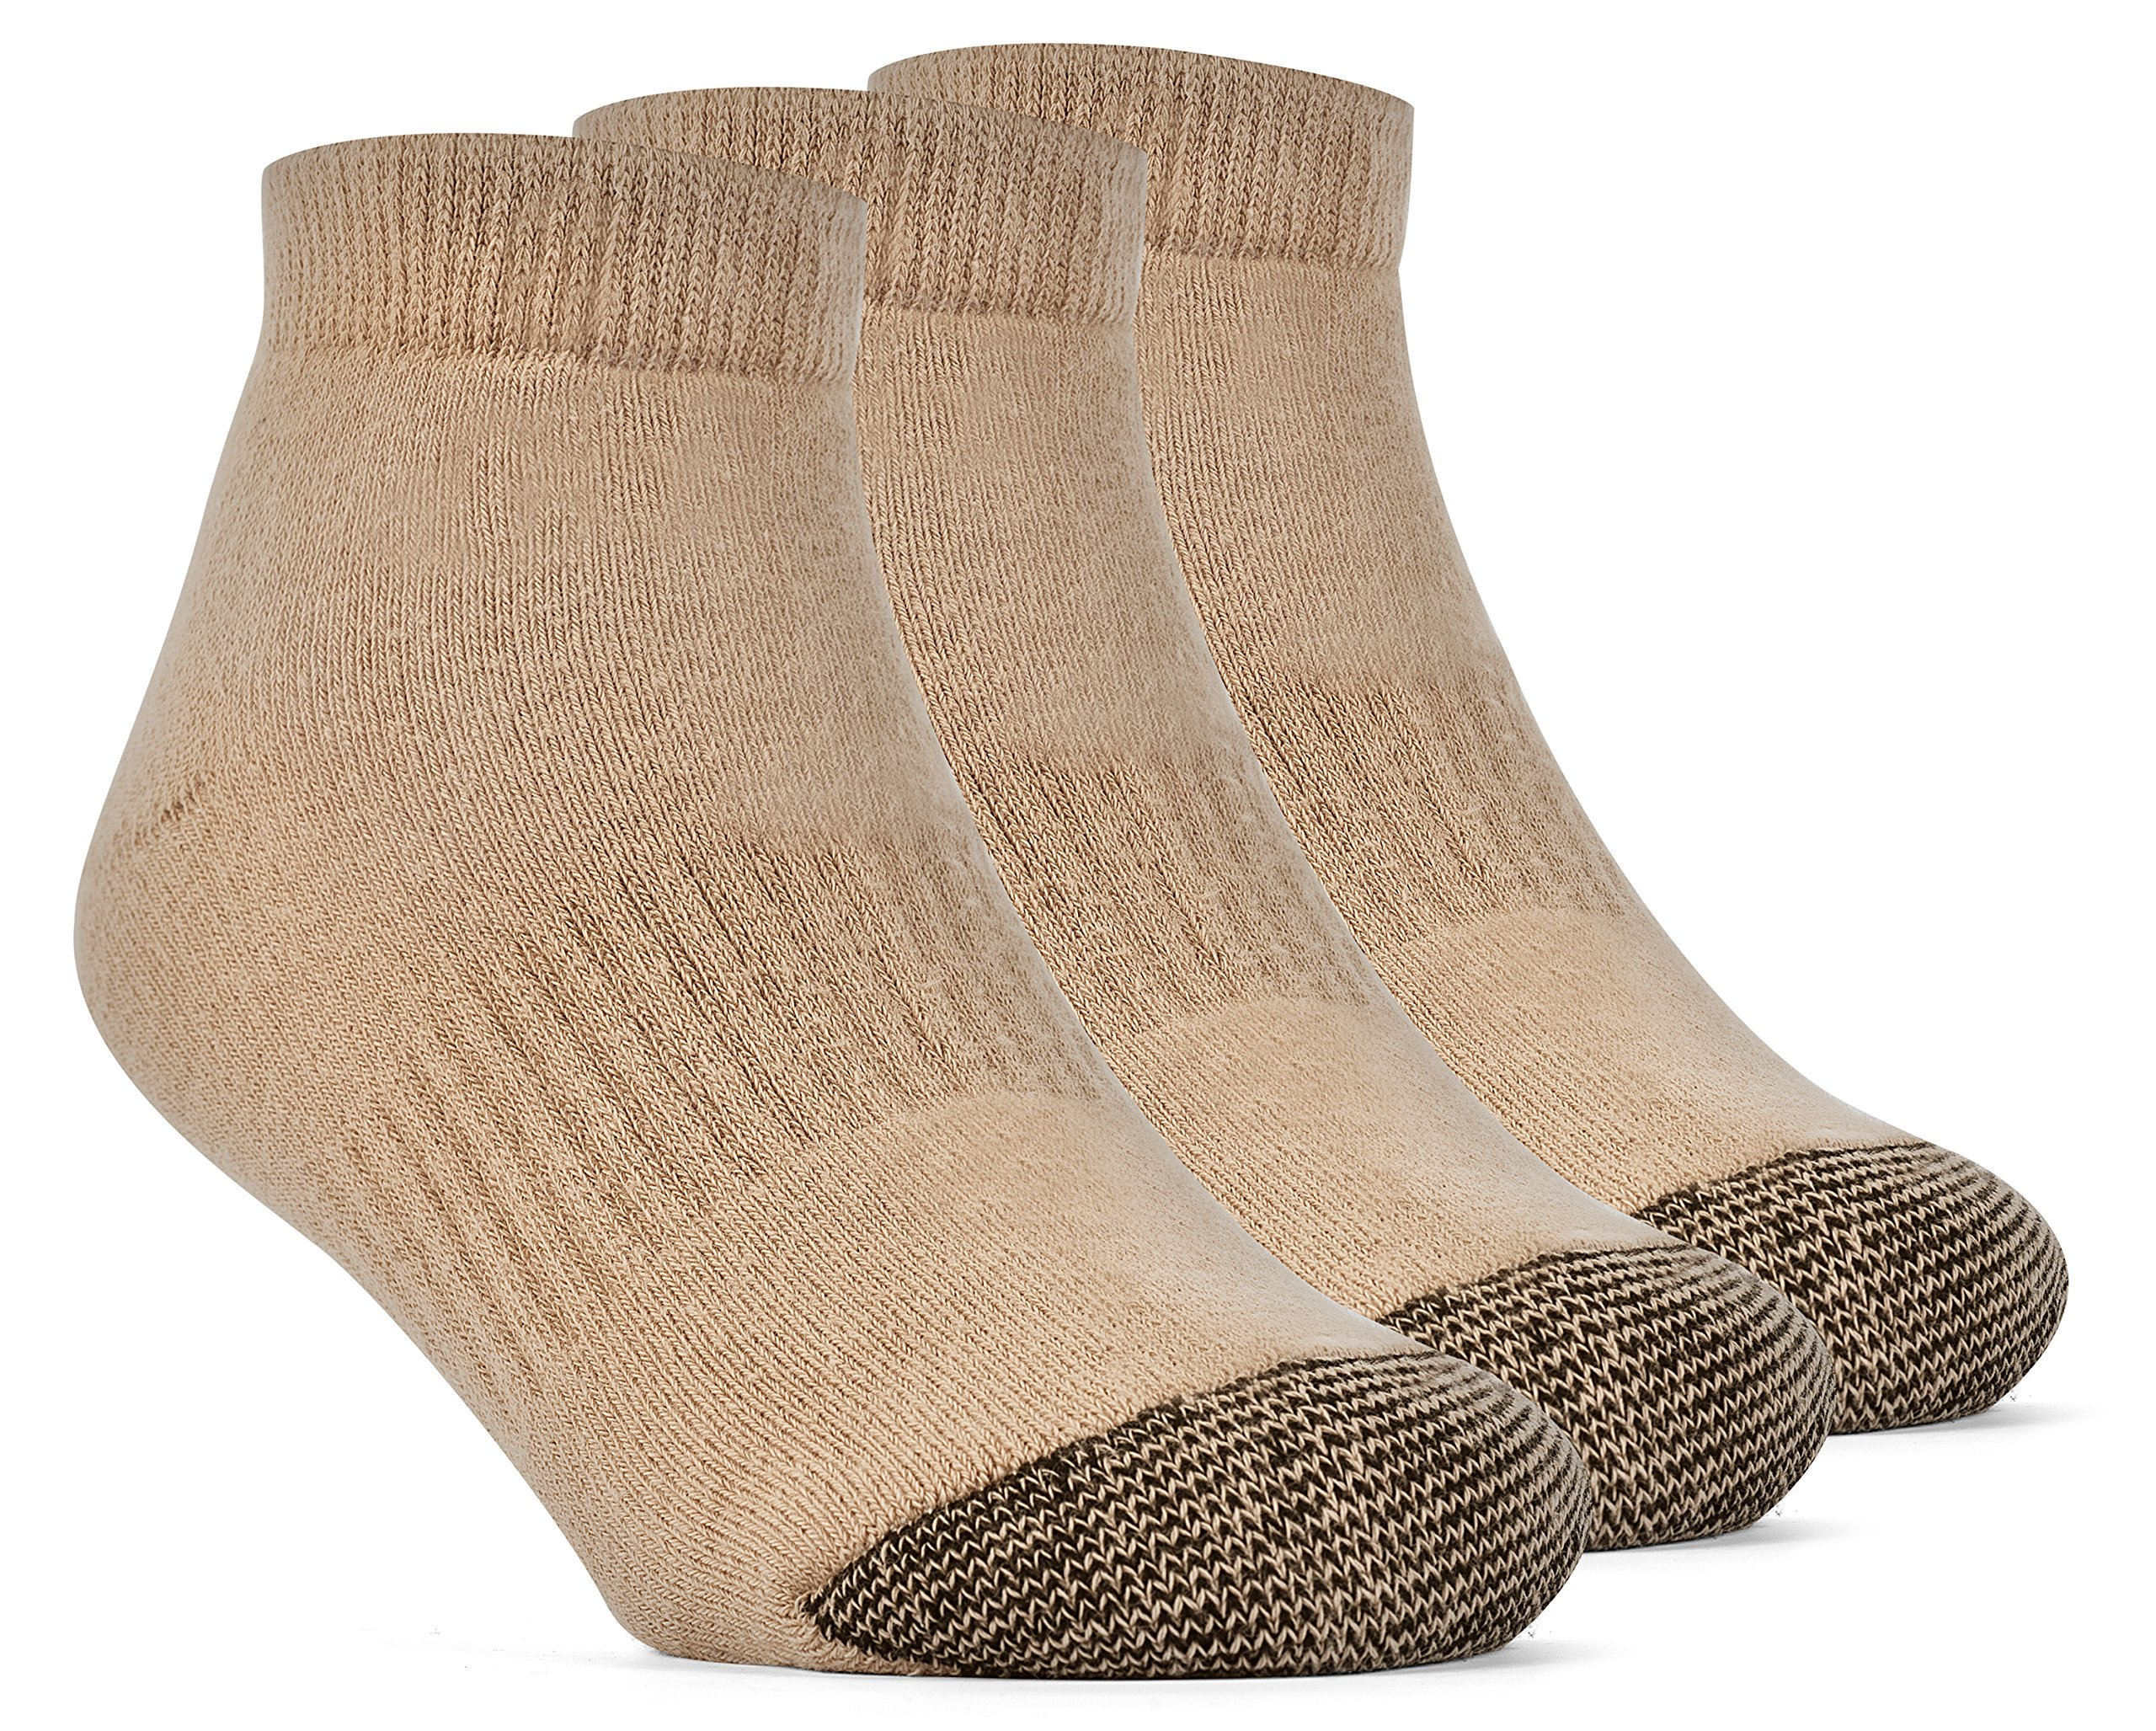 YolBer Boys' Cotton Super Soft Low Cut Cushion Socks - 3 Pairs, Large, Nude Beige by YolBer